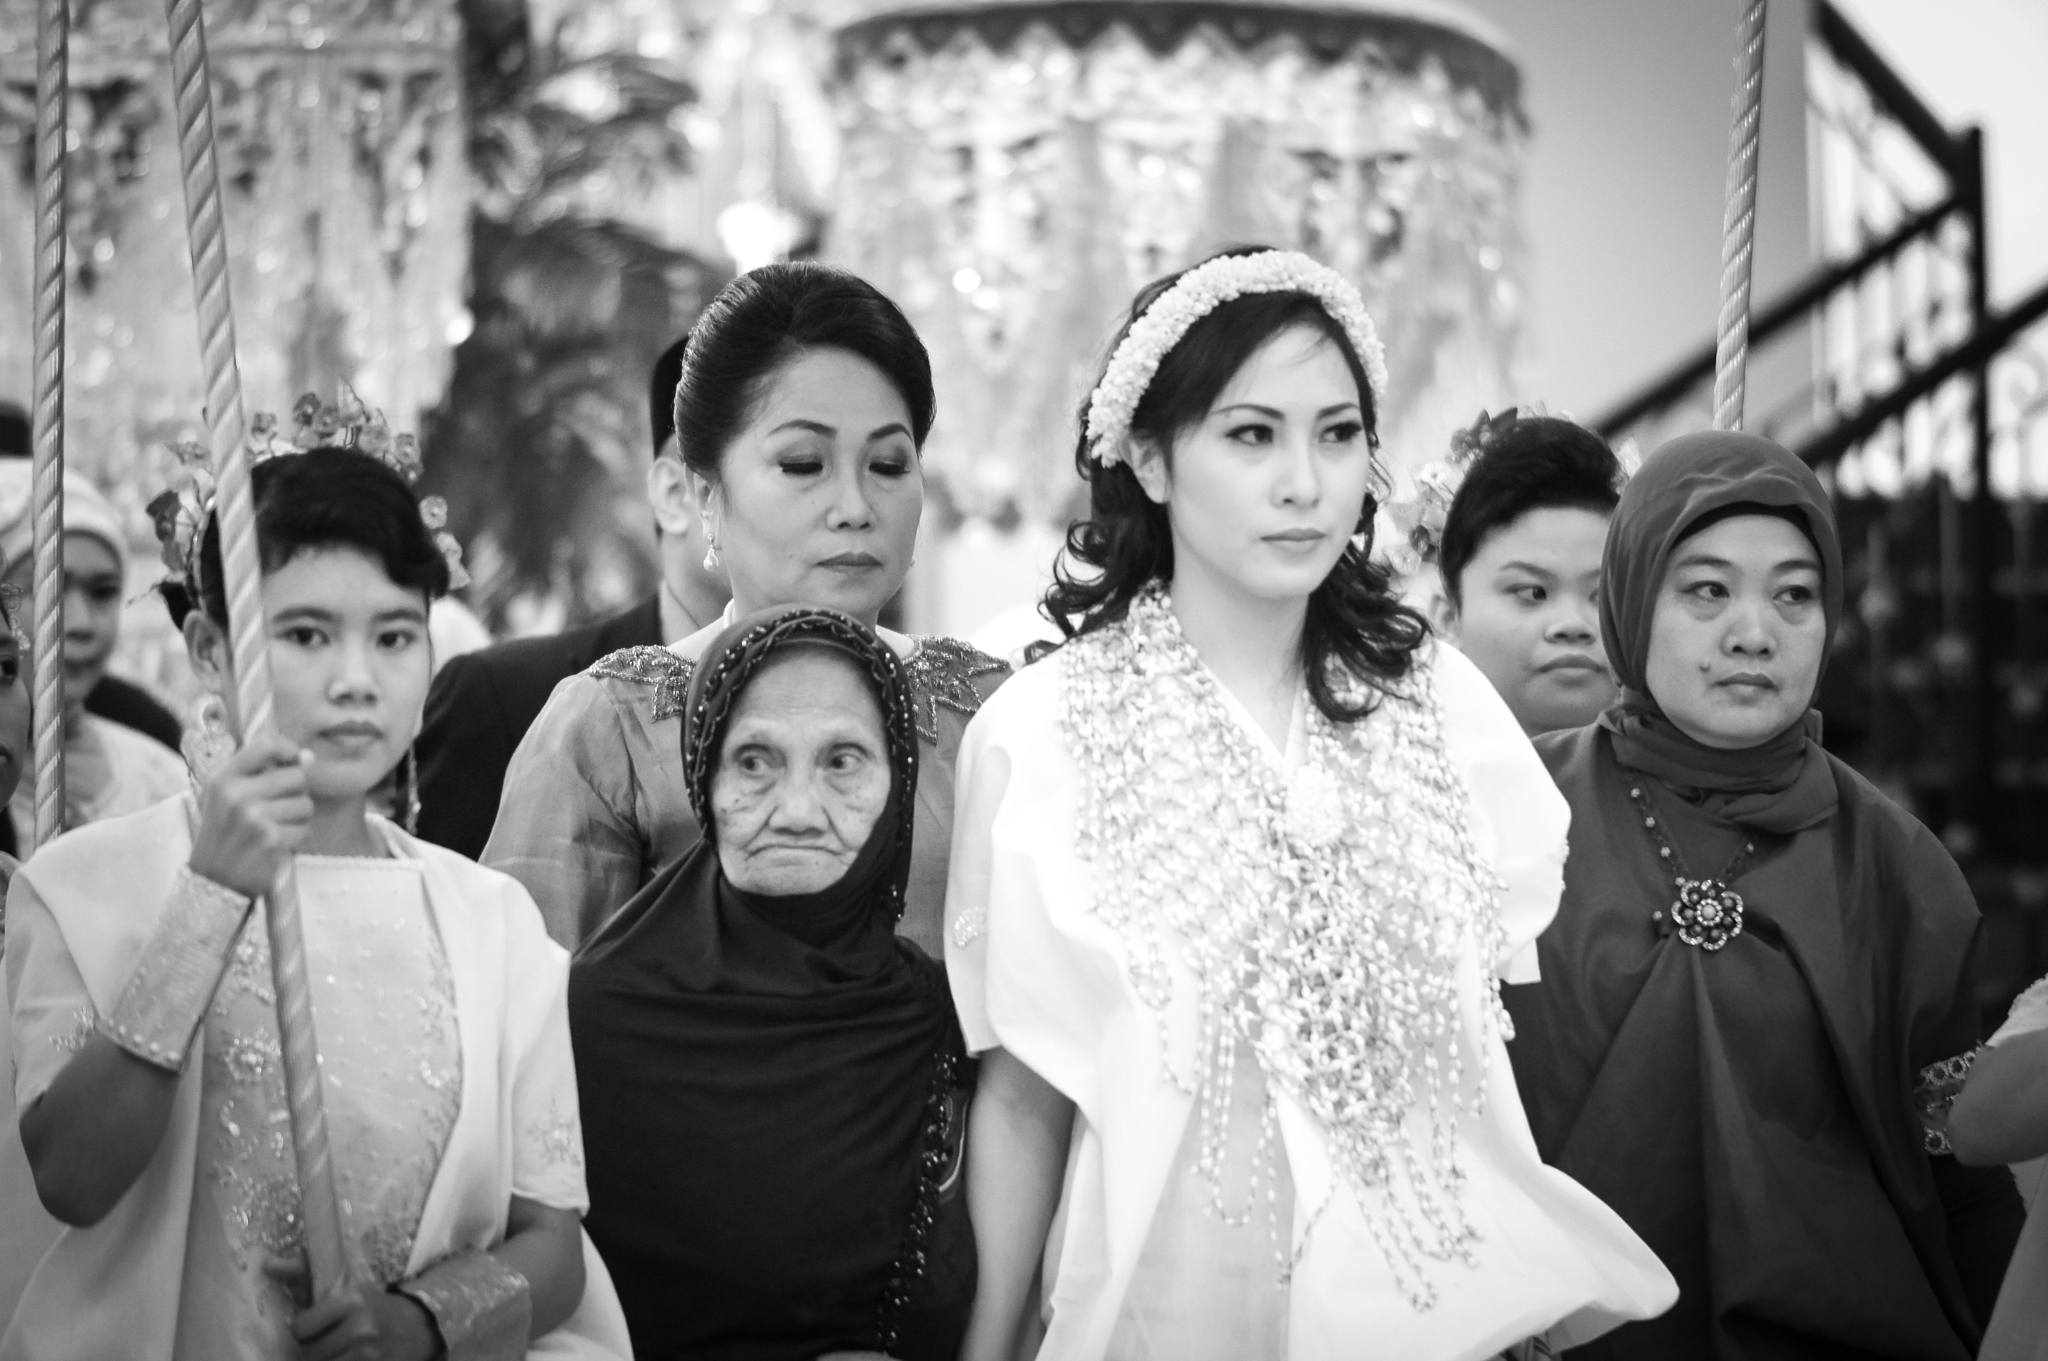 The bride-to-be enters the Mappasili, a cleansing ceremony to prepare her for entering married life.